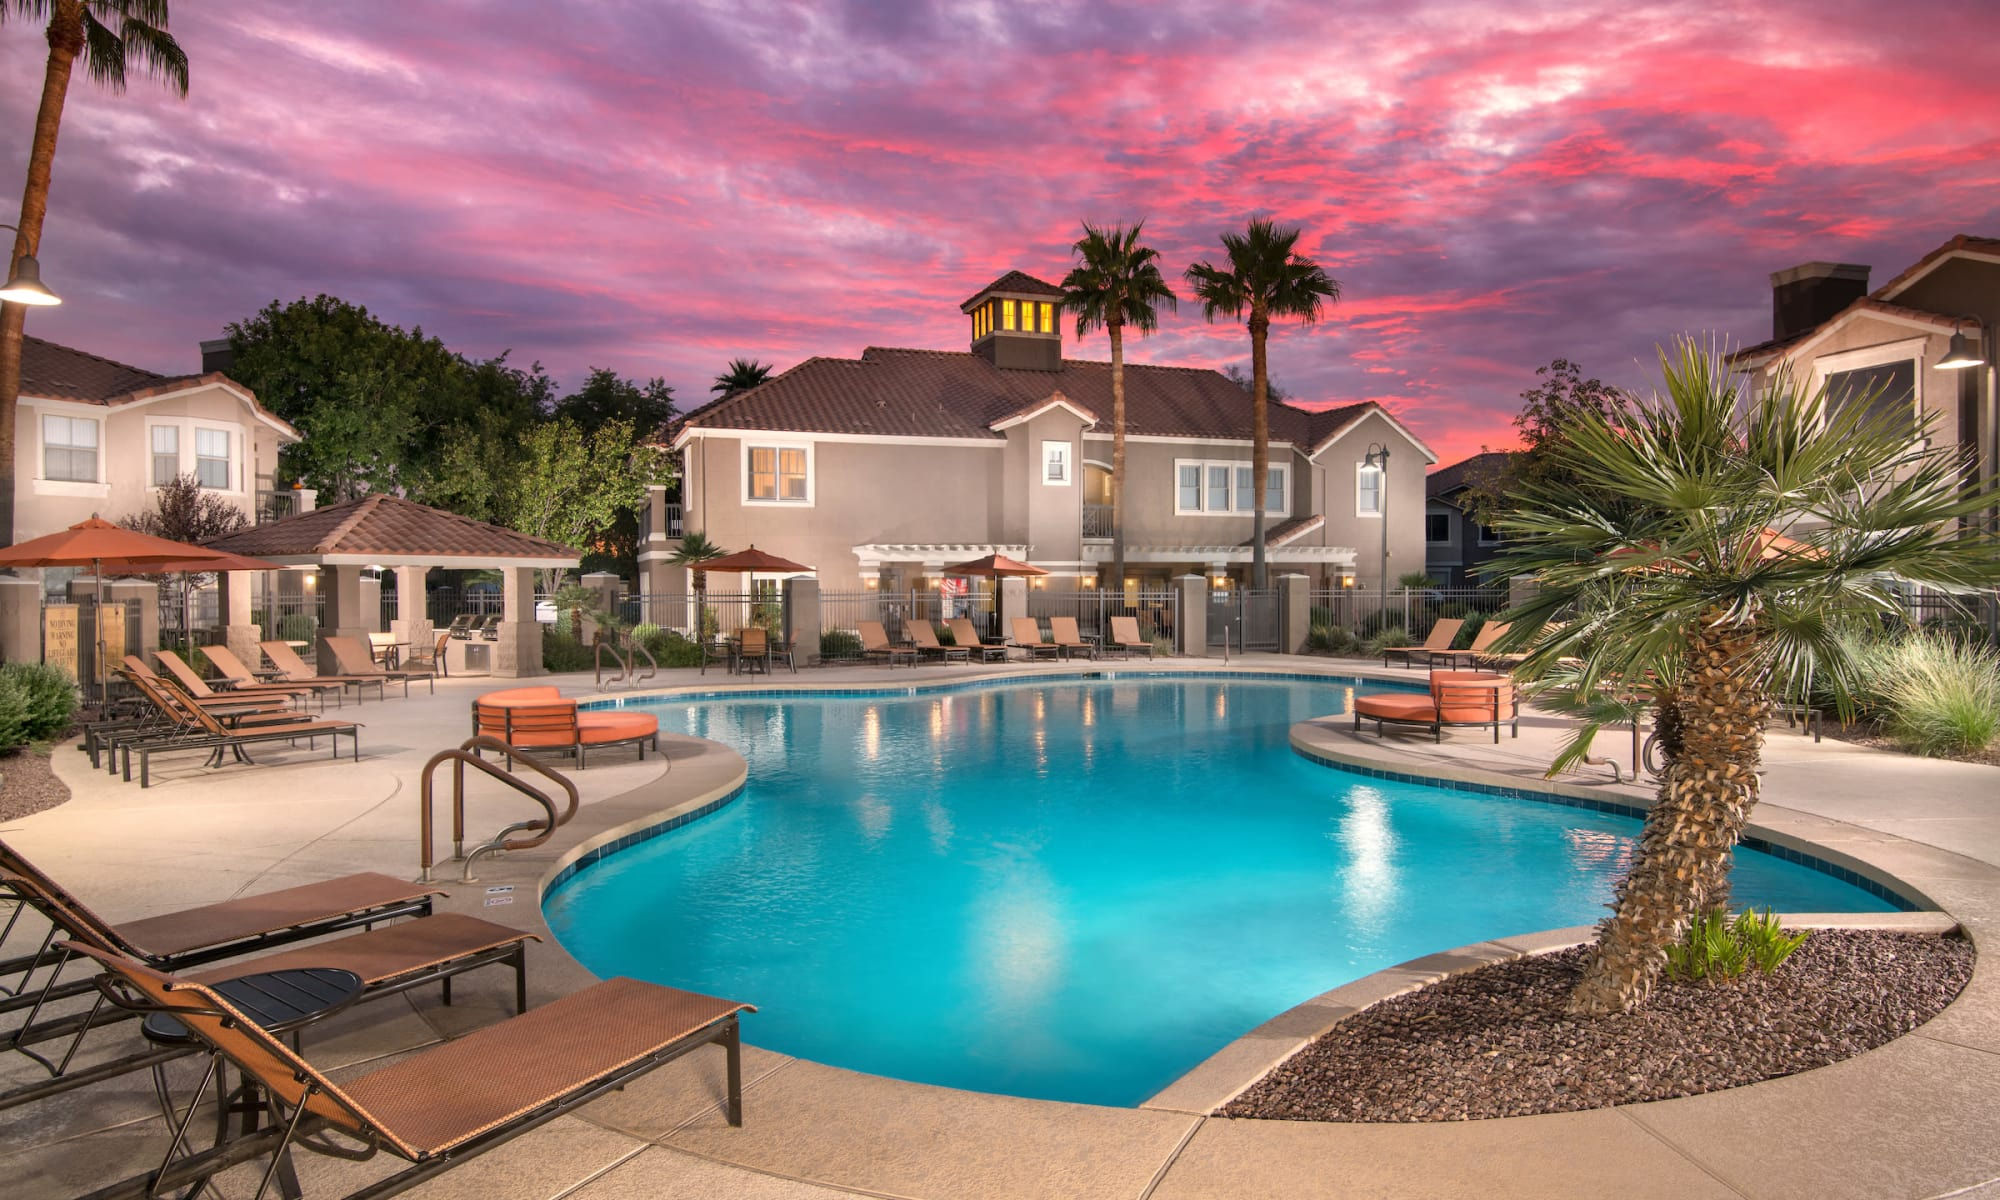 Swimming pool at Villas on Hampton Avenue in Mesa, Arizona